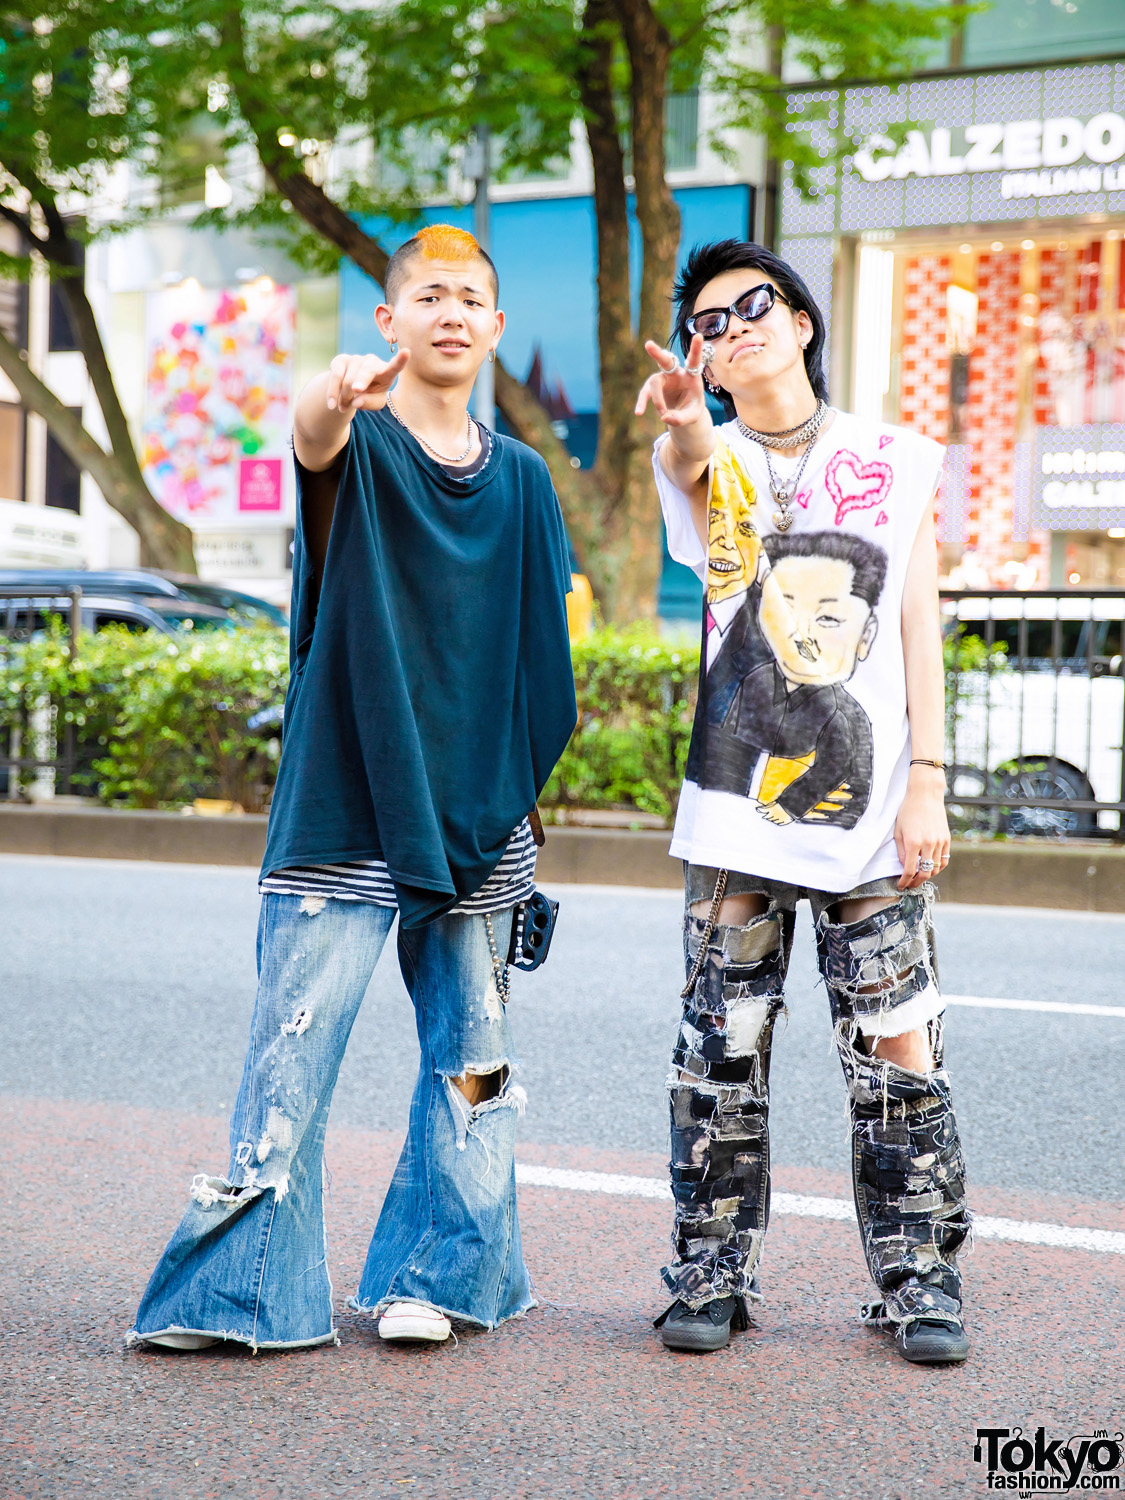 53f5ca60fbb2fc Harajuku Guys in Punk-Inspired Styles